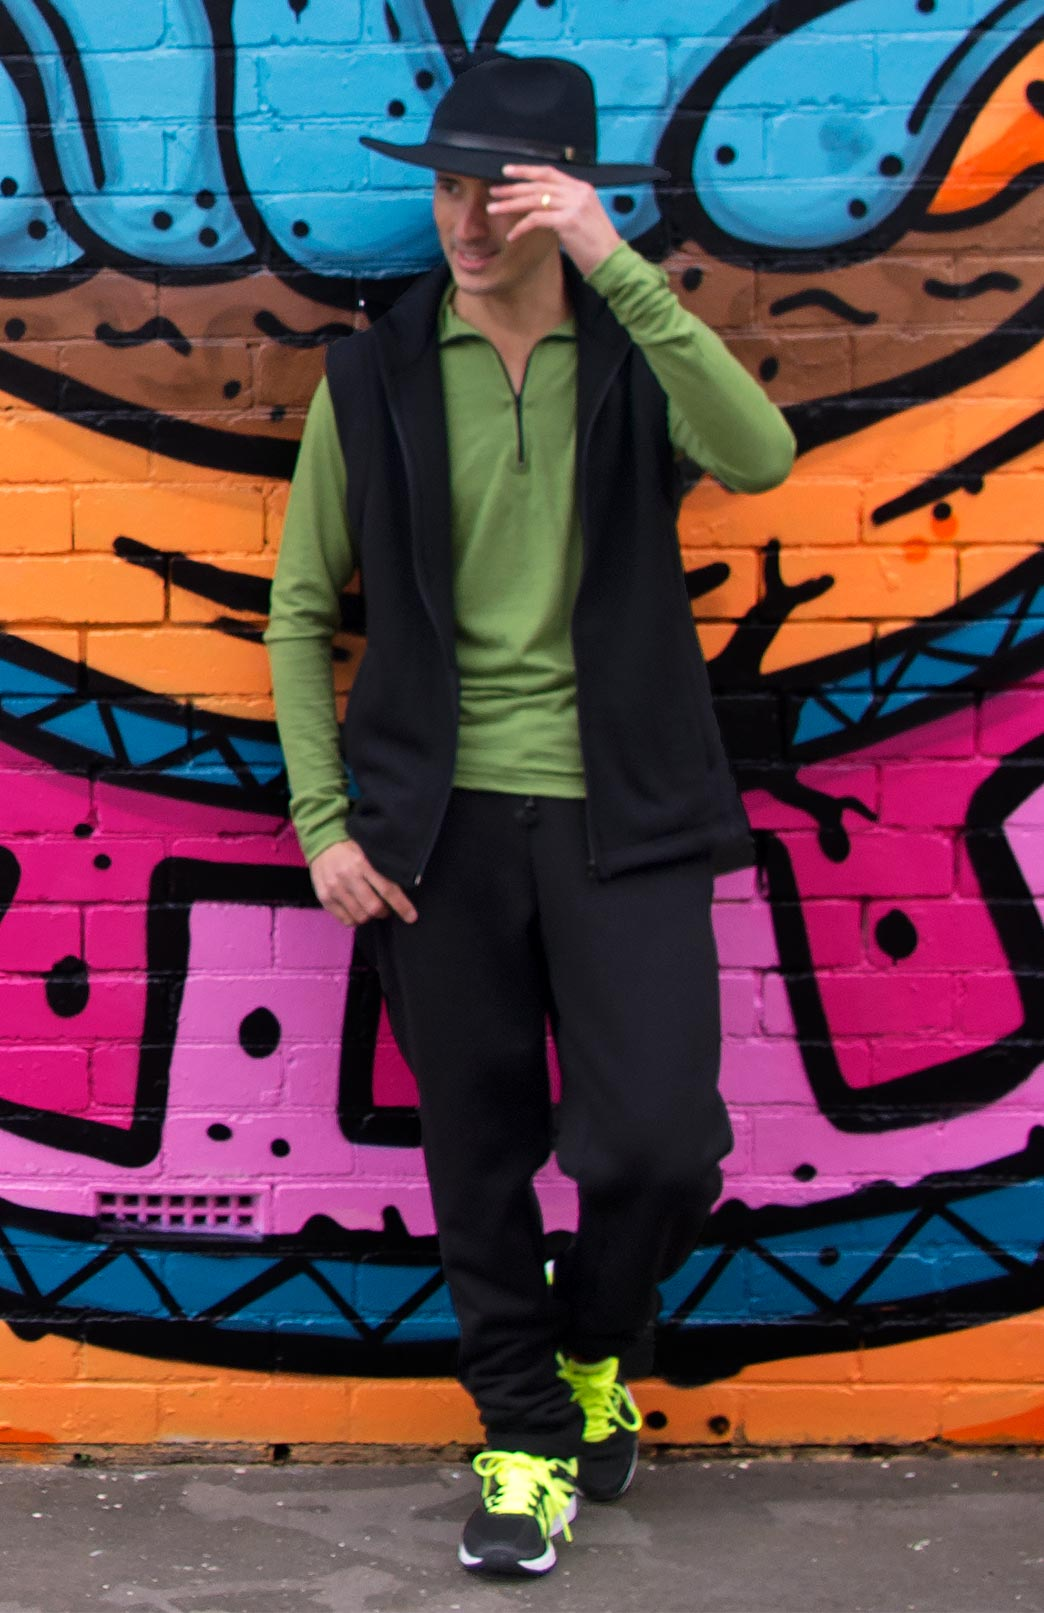 Zip Neck Top - Lightweight (~170g) - Men's Green Merino Wool Zip Neck Pull Over Top with Thumb Holes - Smitten Merino Tasmania Australia